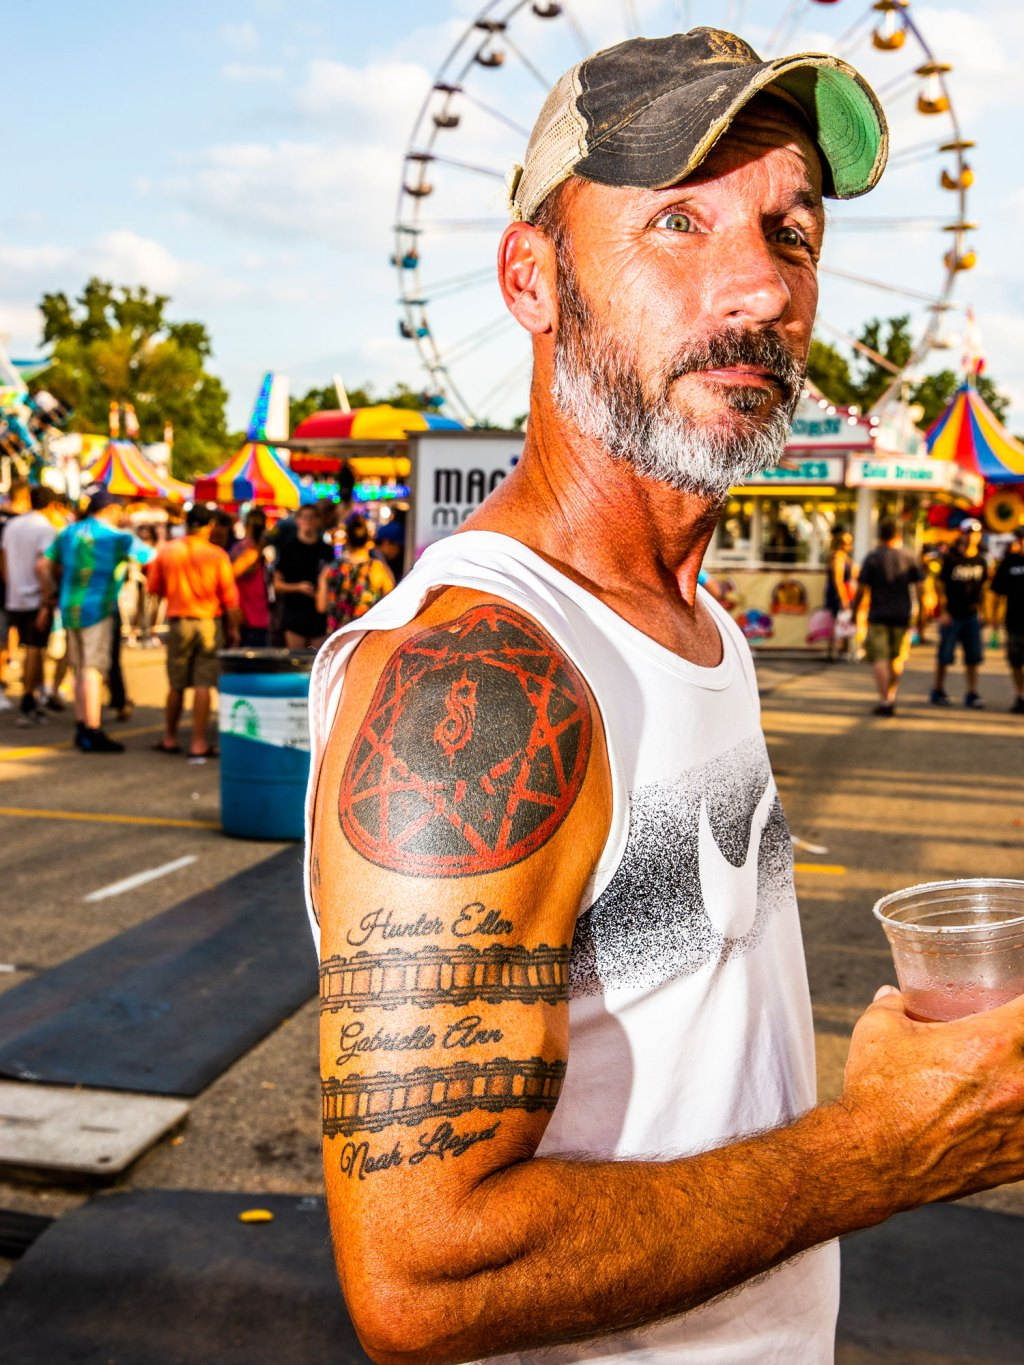 A Slipknot fan waits in line before Slipknot's homecoming show at the Iowa State Fair in Des Moines, Iowa on August 10, 2019.